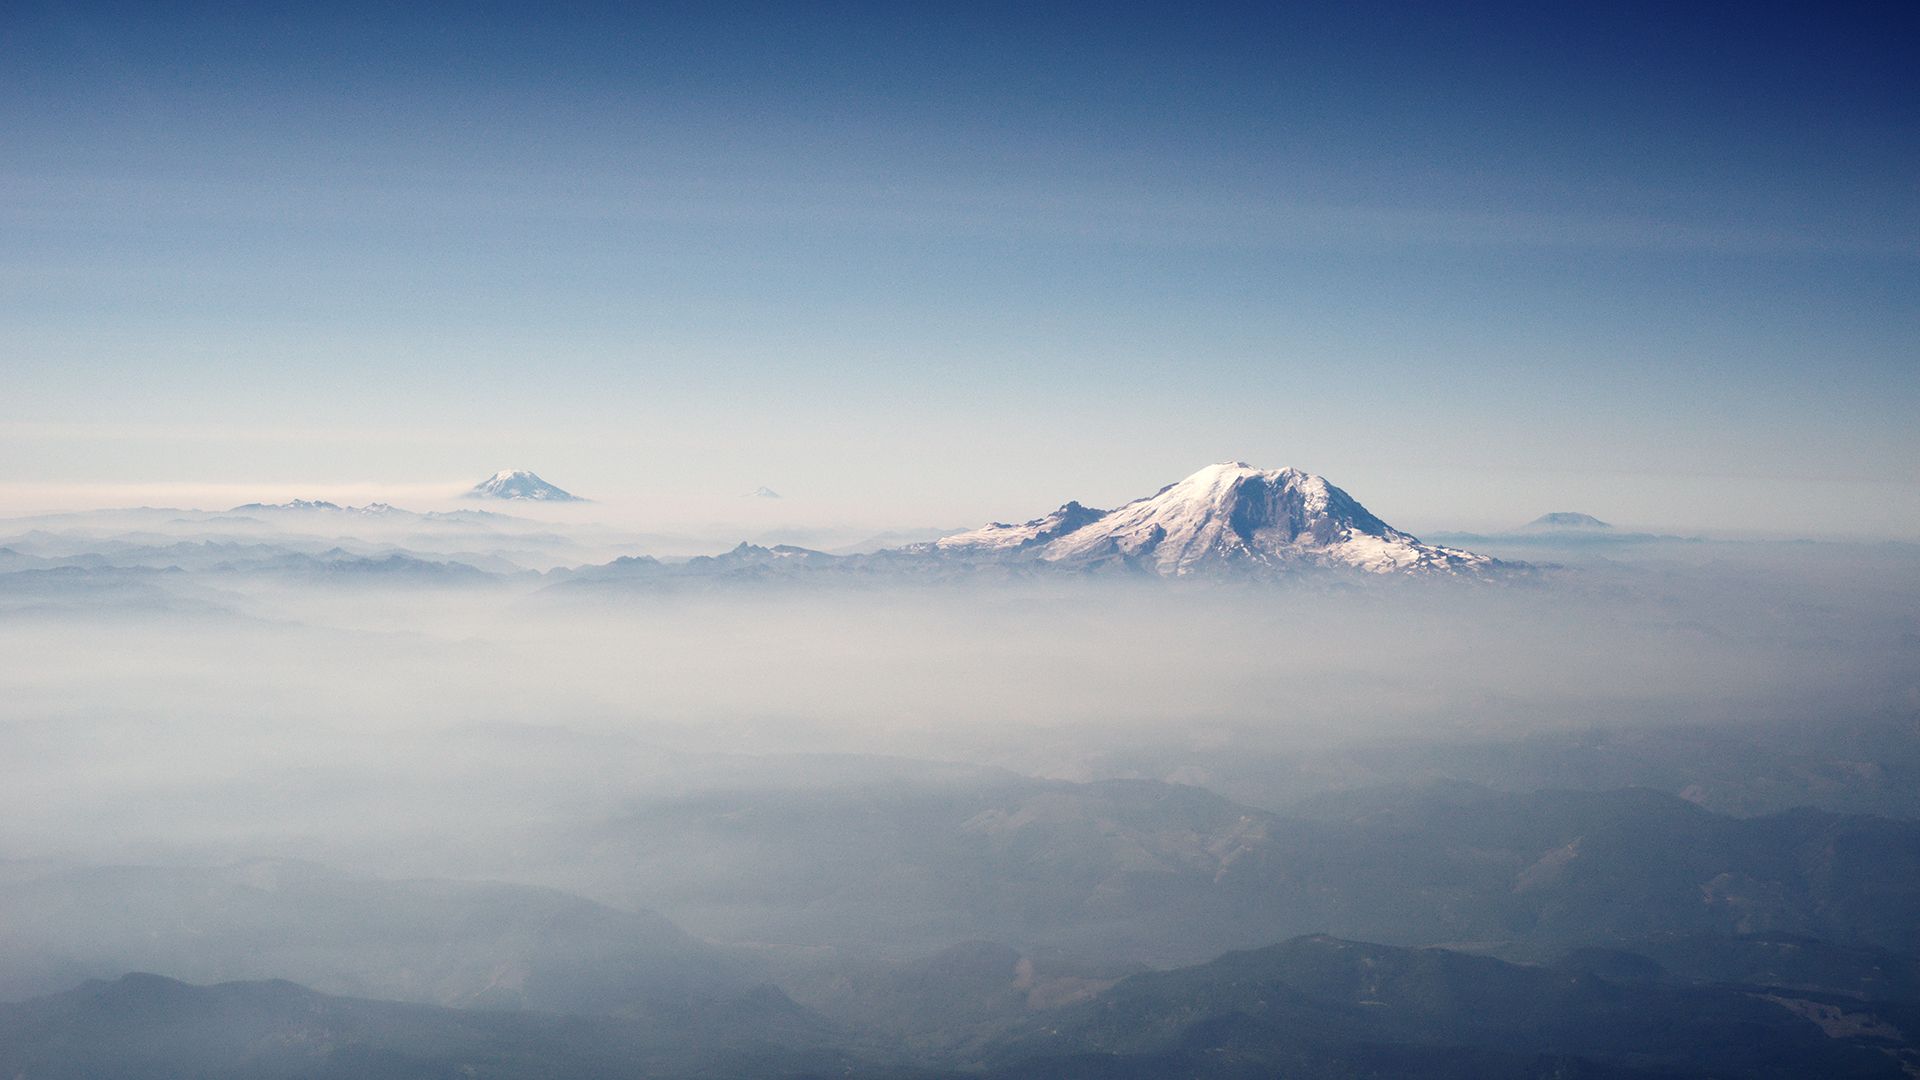 Mount_Rainier_and_other_Cascades_mountains_poking_through_clouds.jpg